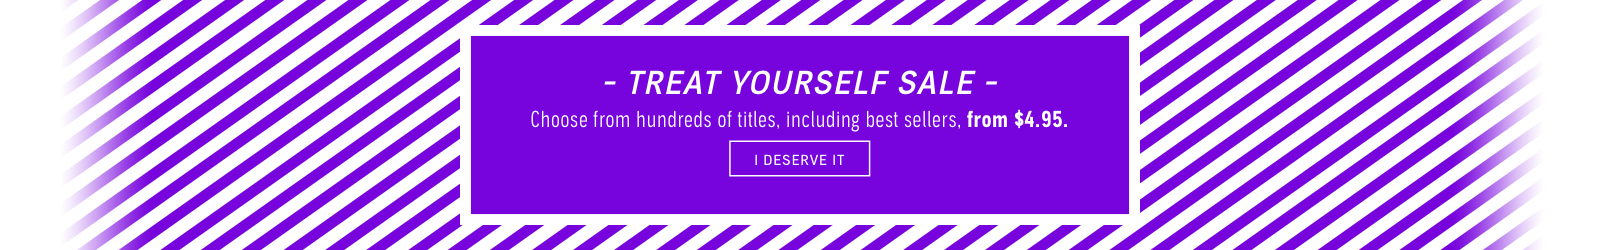 Treat Yourself Sale. Hundreds of titles from $4.95.